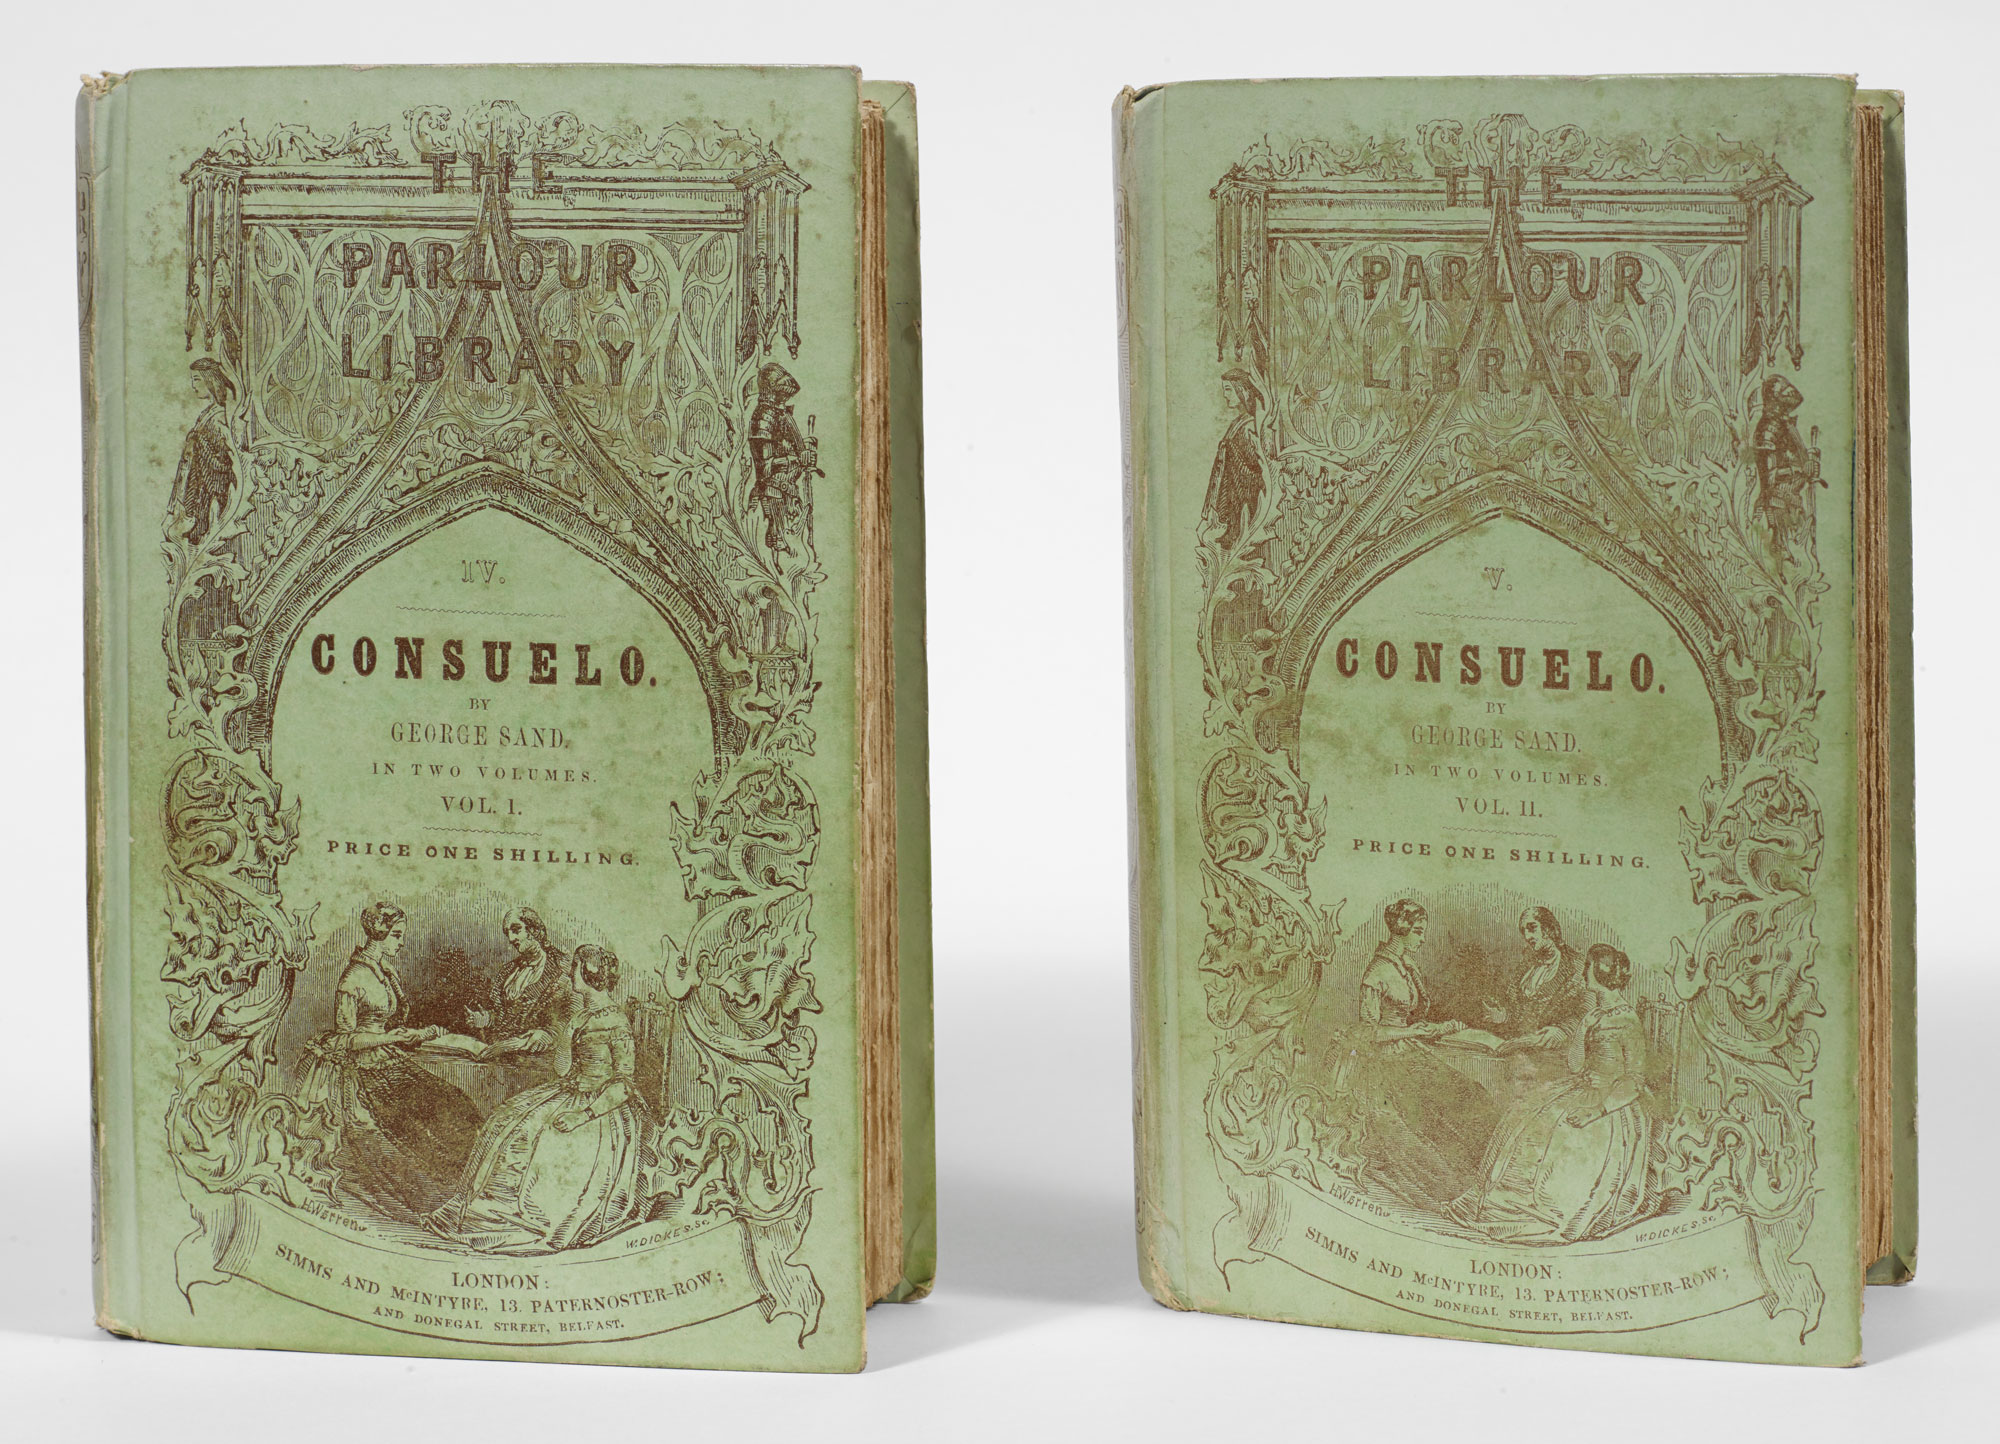 Consuelo by George Sand [page: whole book]